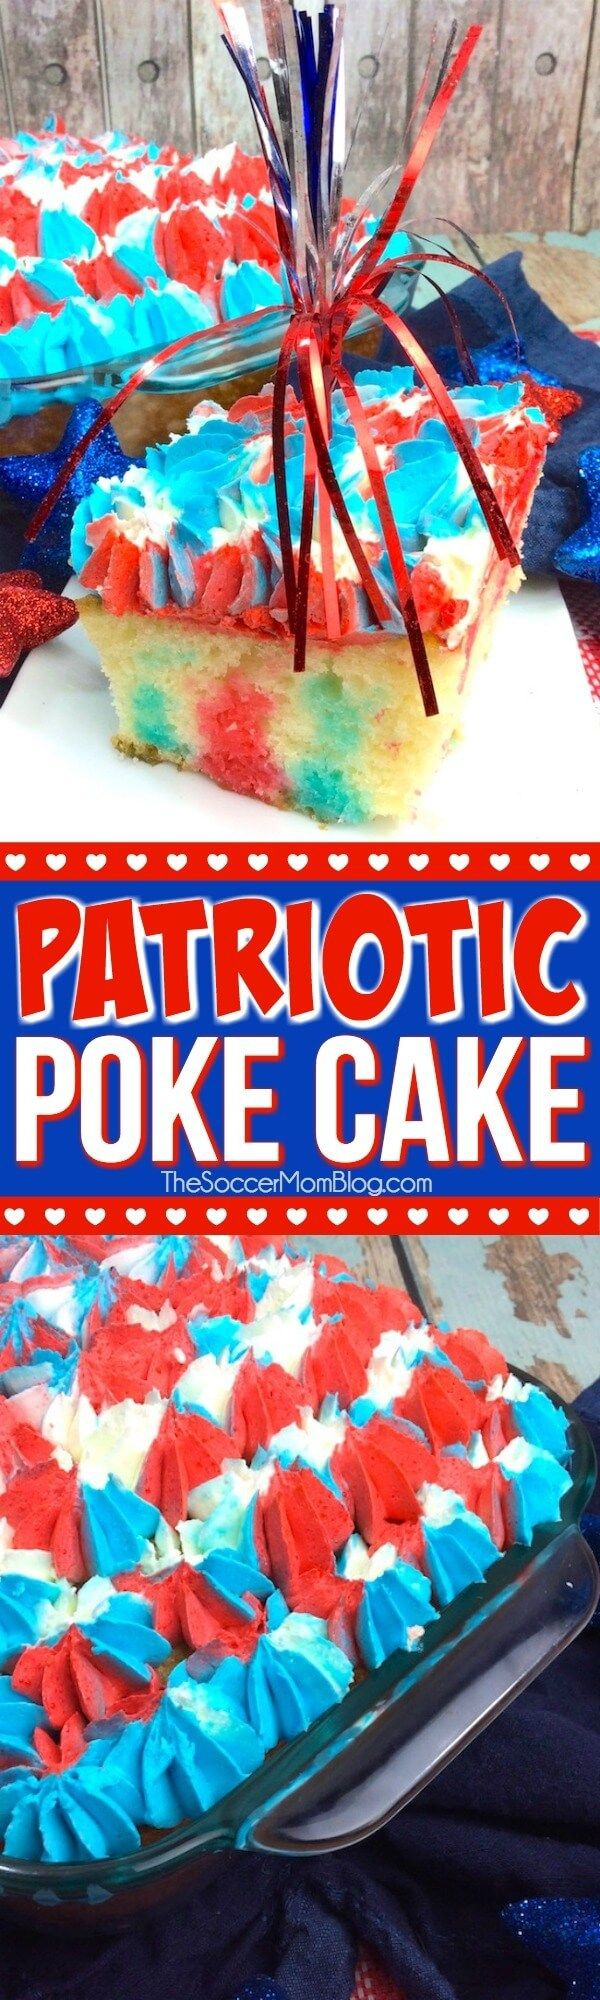 This stunning Red White & Blue Jello Poke Cake is guaranteed to be the star of the party! The perfect patriotic dessert for Memorial Day or the 4th of July.